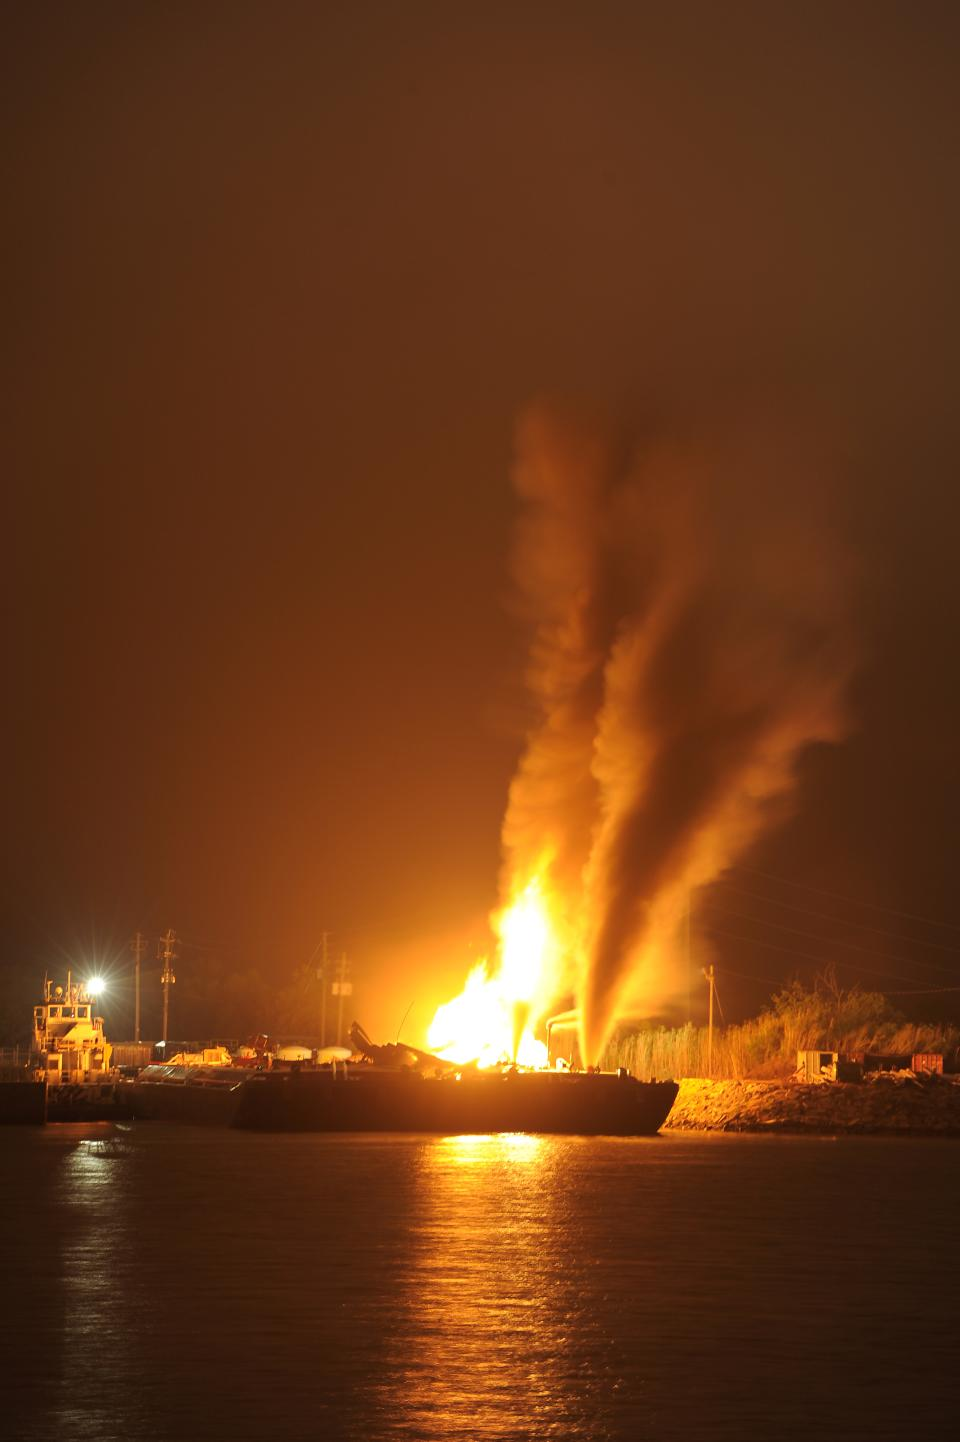 Fire burns aboard two fuel barges along Mobile River after explosions sent three workers to the hospital. Fire officials have pulled units back from fighting the fire due to the explosions and no immediate threat to lives. (AP Photo John David Mercer)